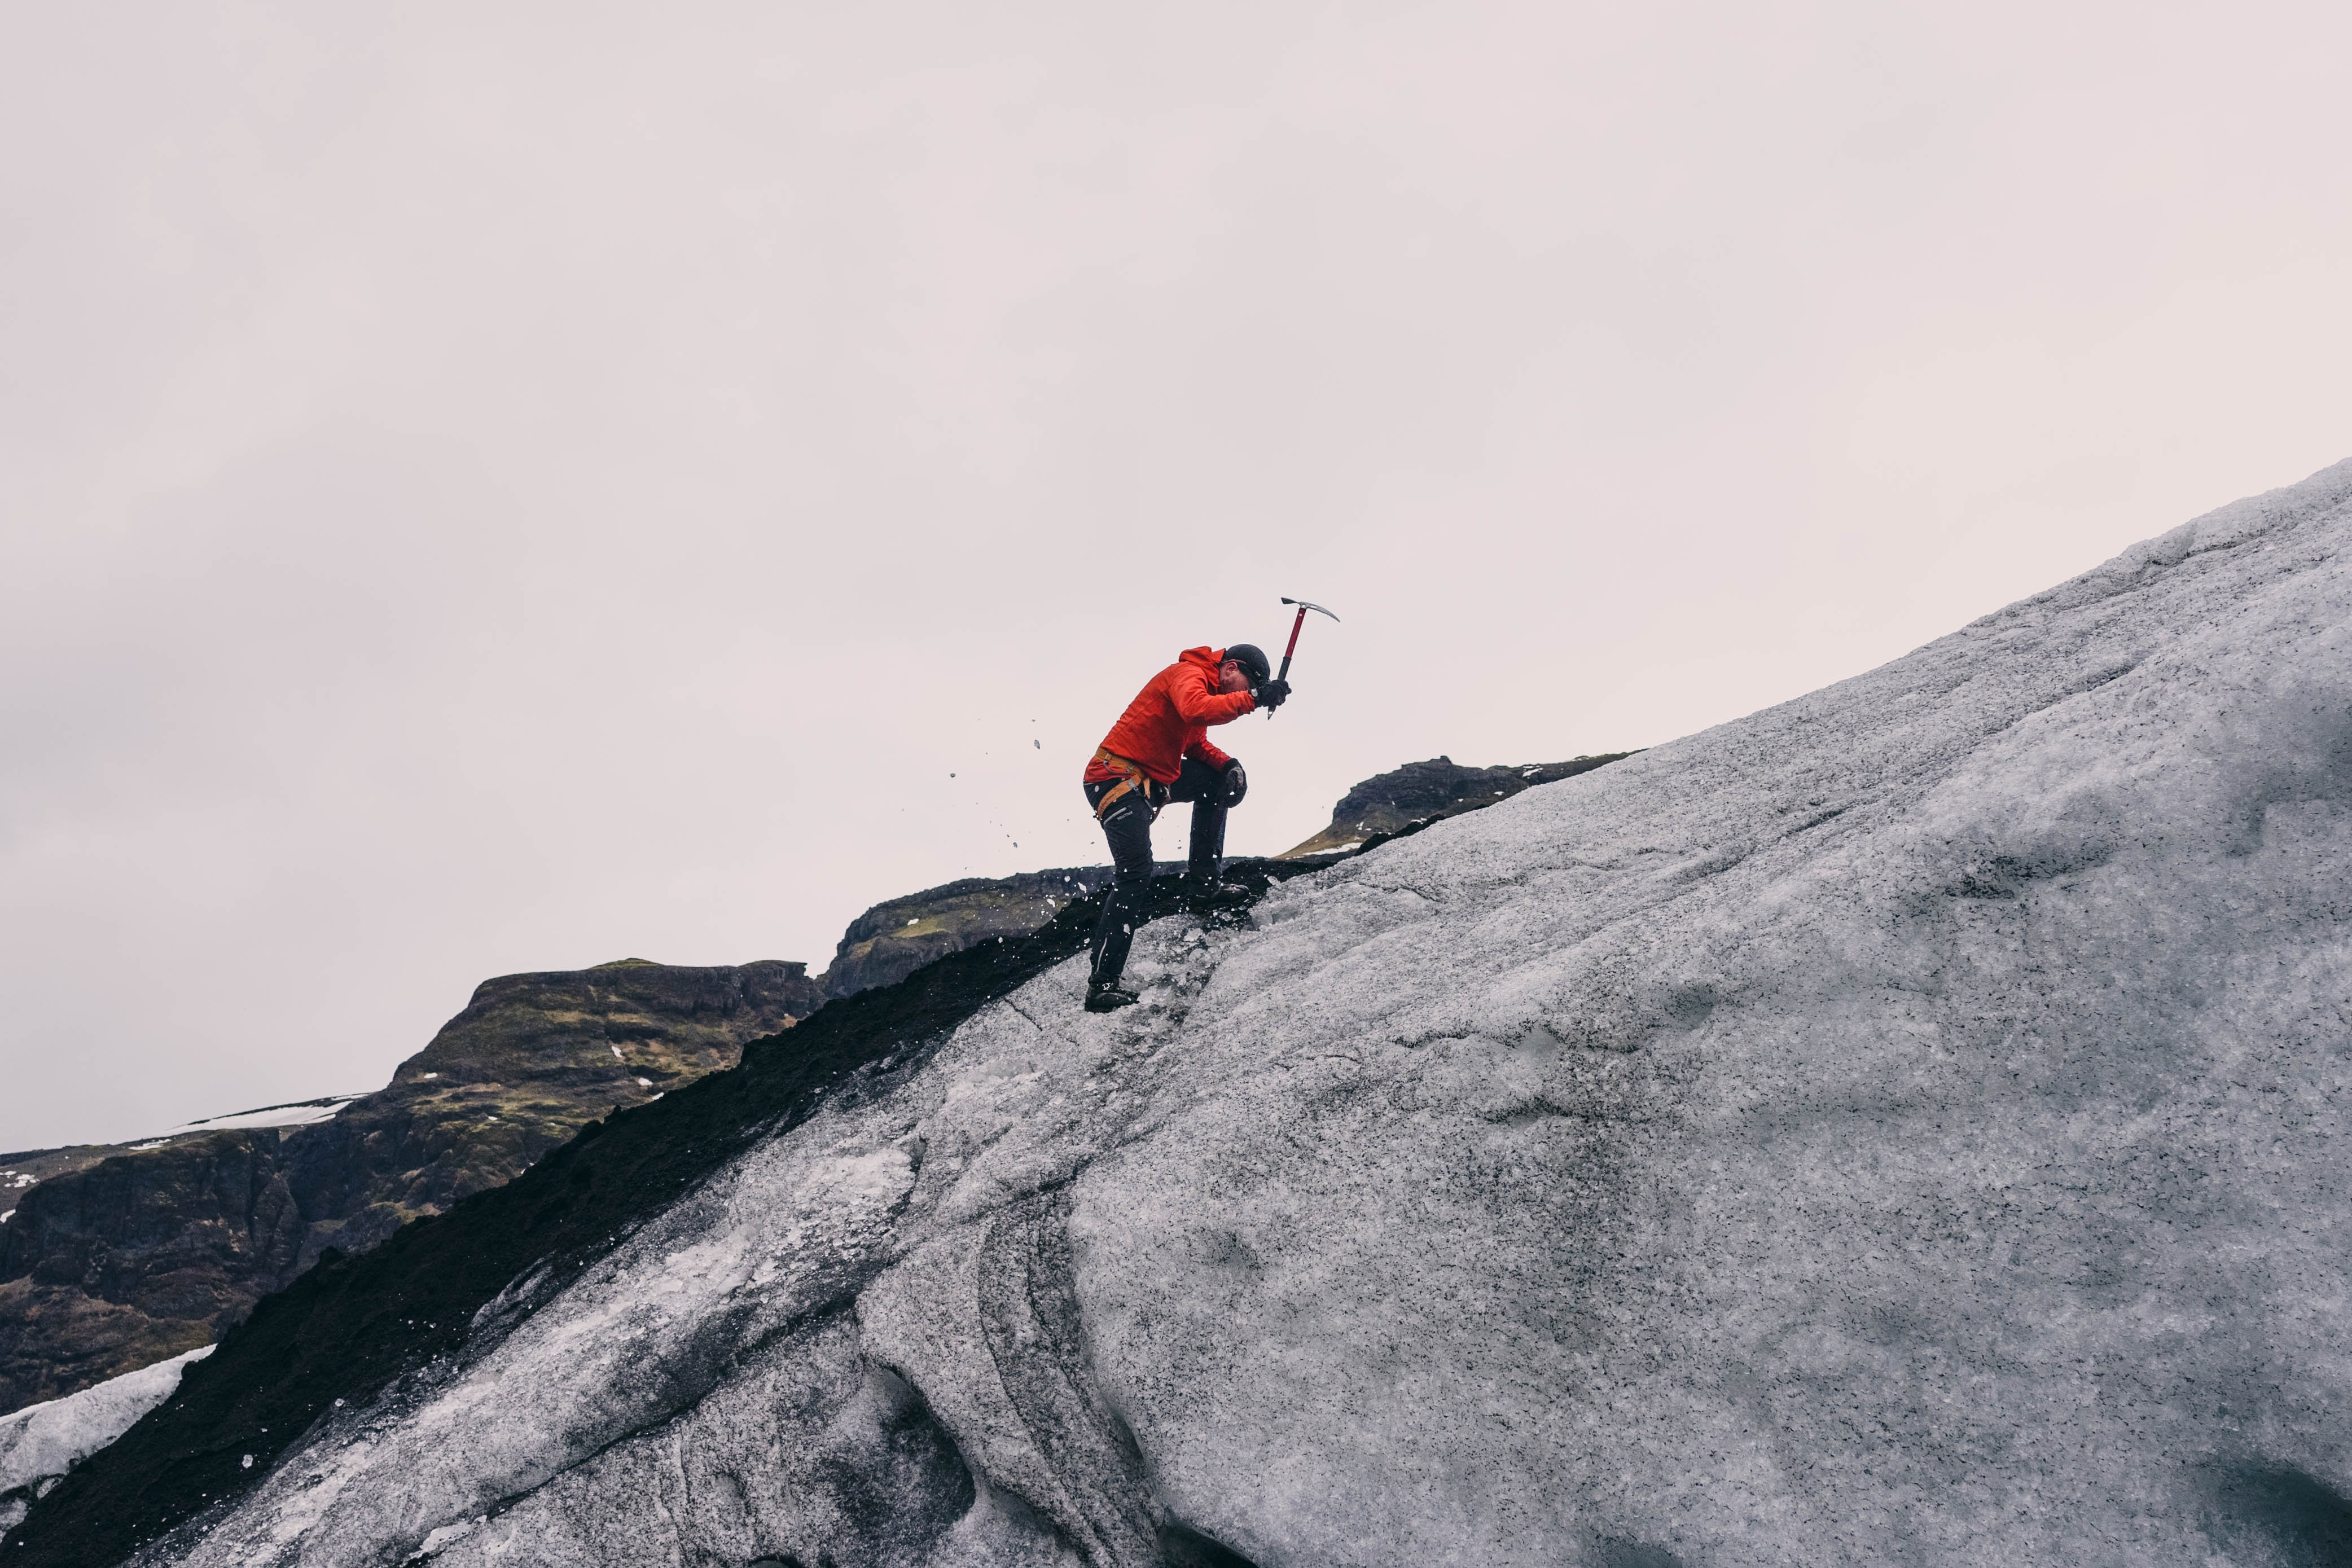 A man wearing a red jacket, holding an ice pick, ice climbing up a mountain